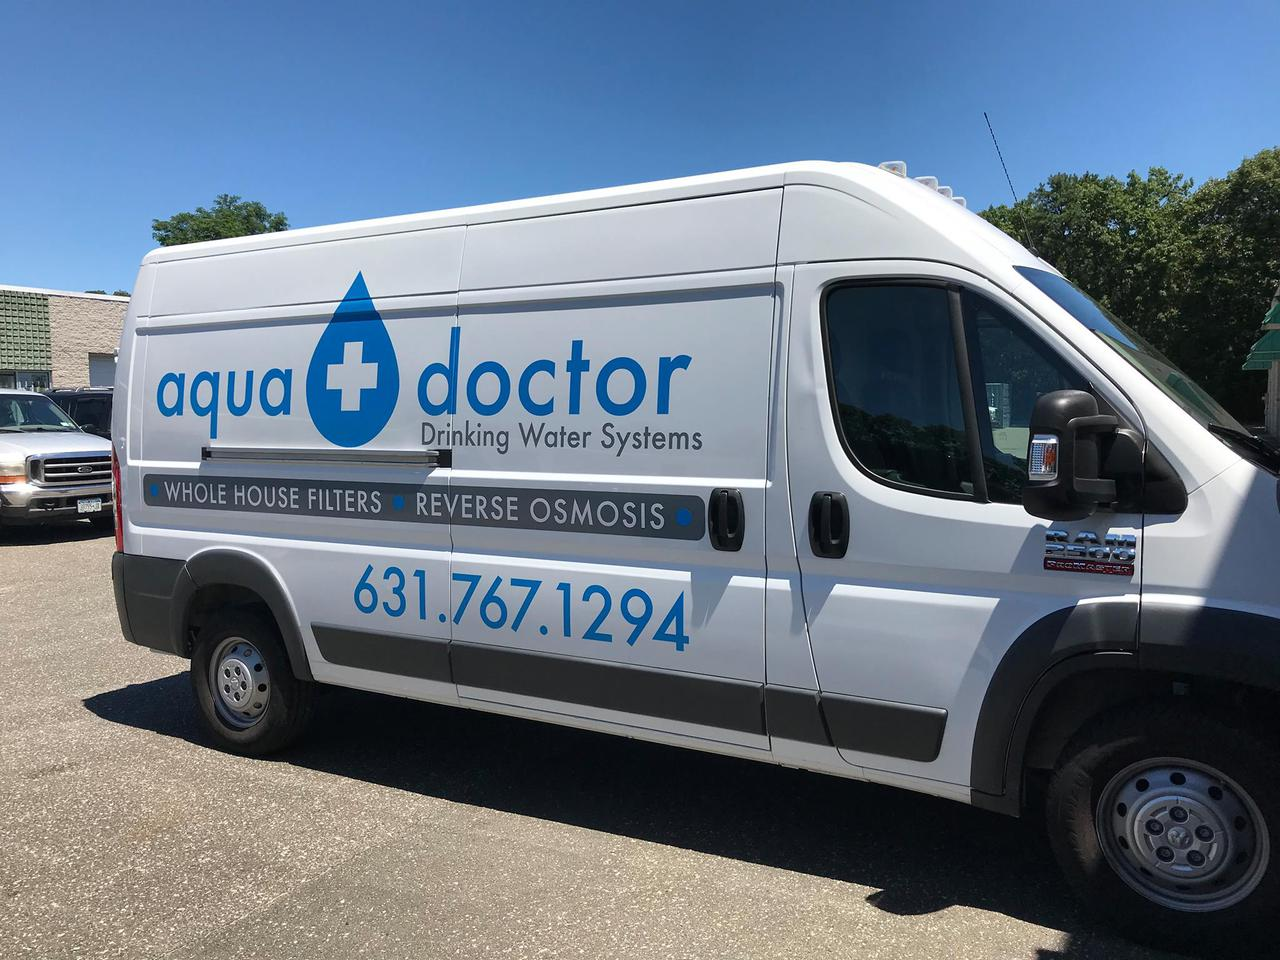 Aqua Doctor Water Filtration and Water Purification Company van